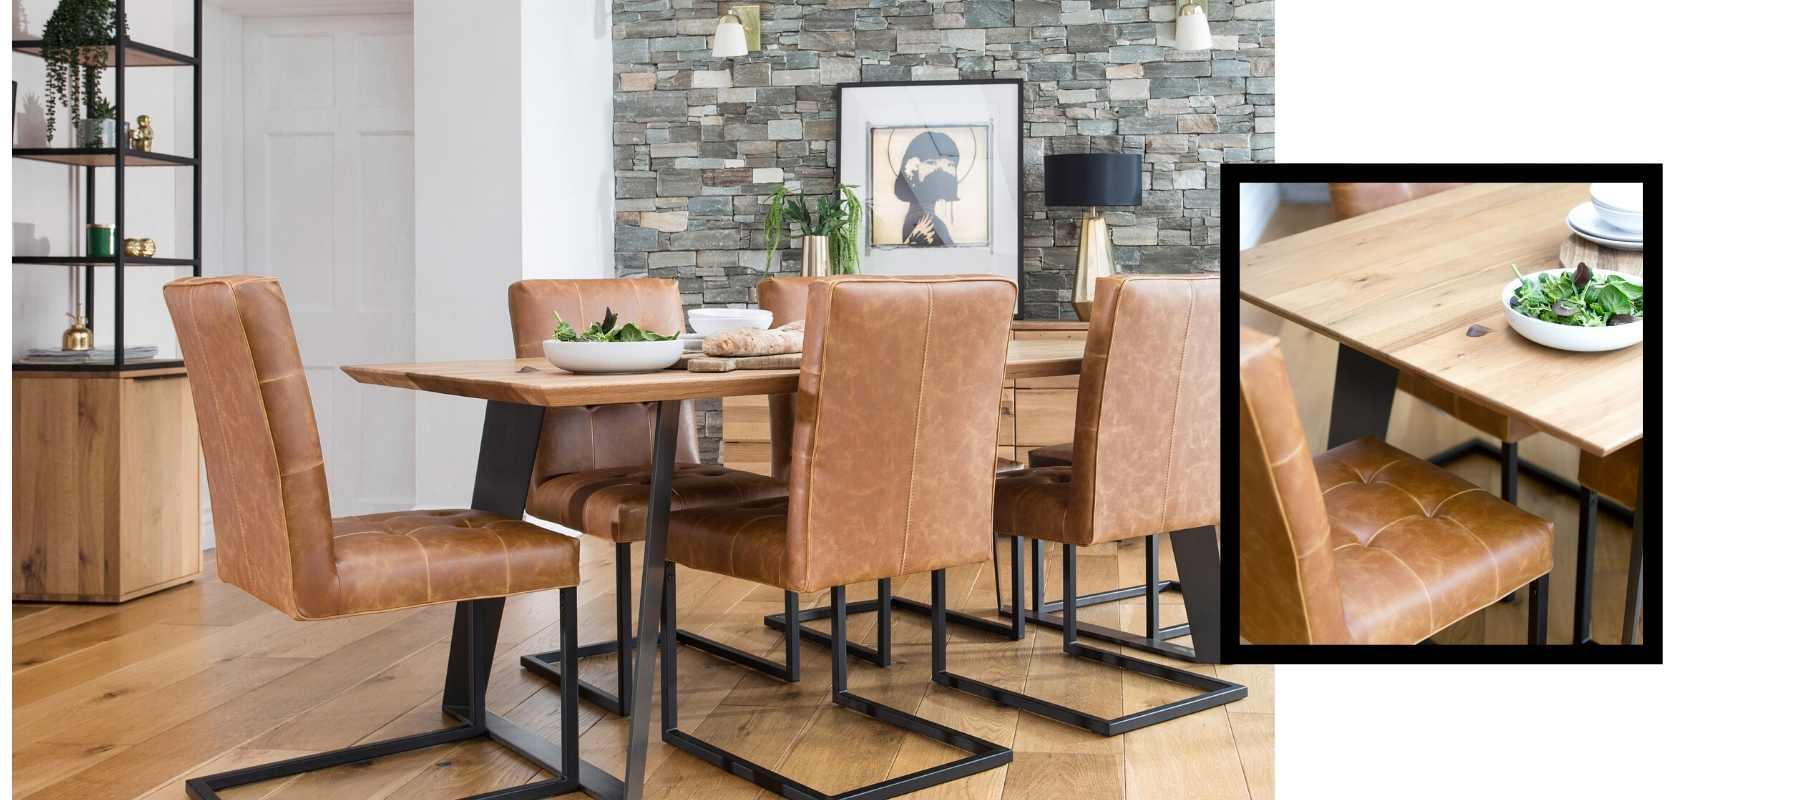 Rocco Industrial Oak Dining Table & Brown chairs